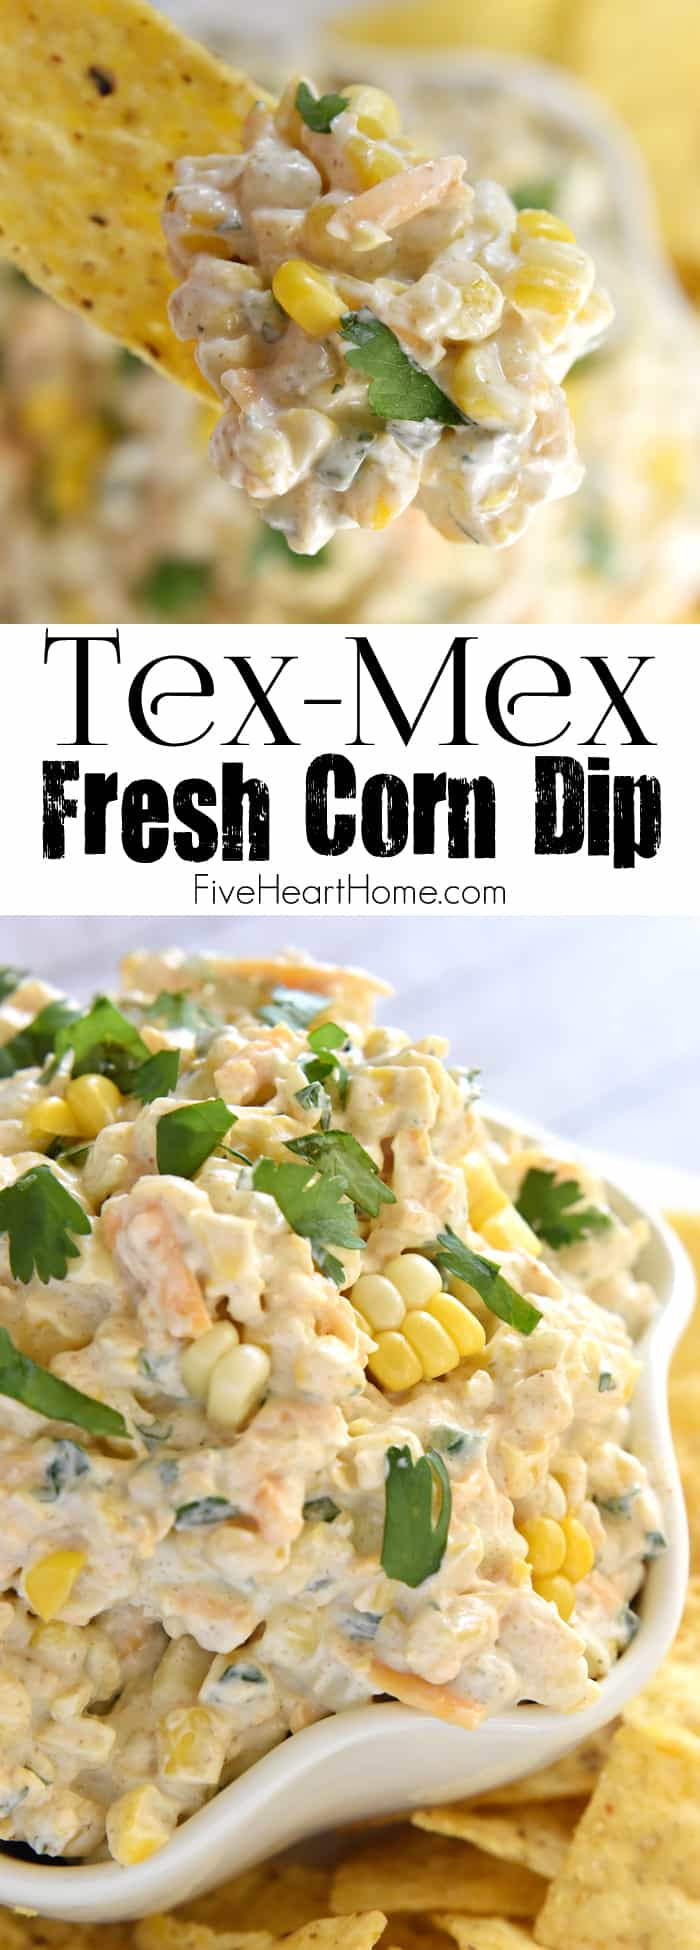 Tex-Mex Fresh Corn Dip Collage with Text Overlay